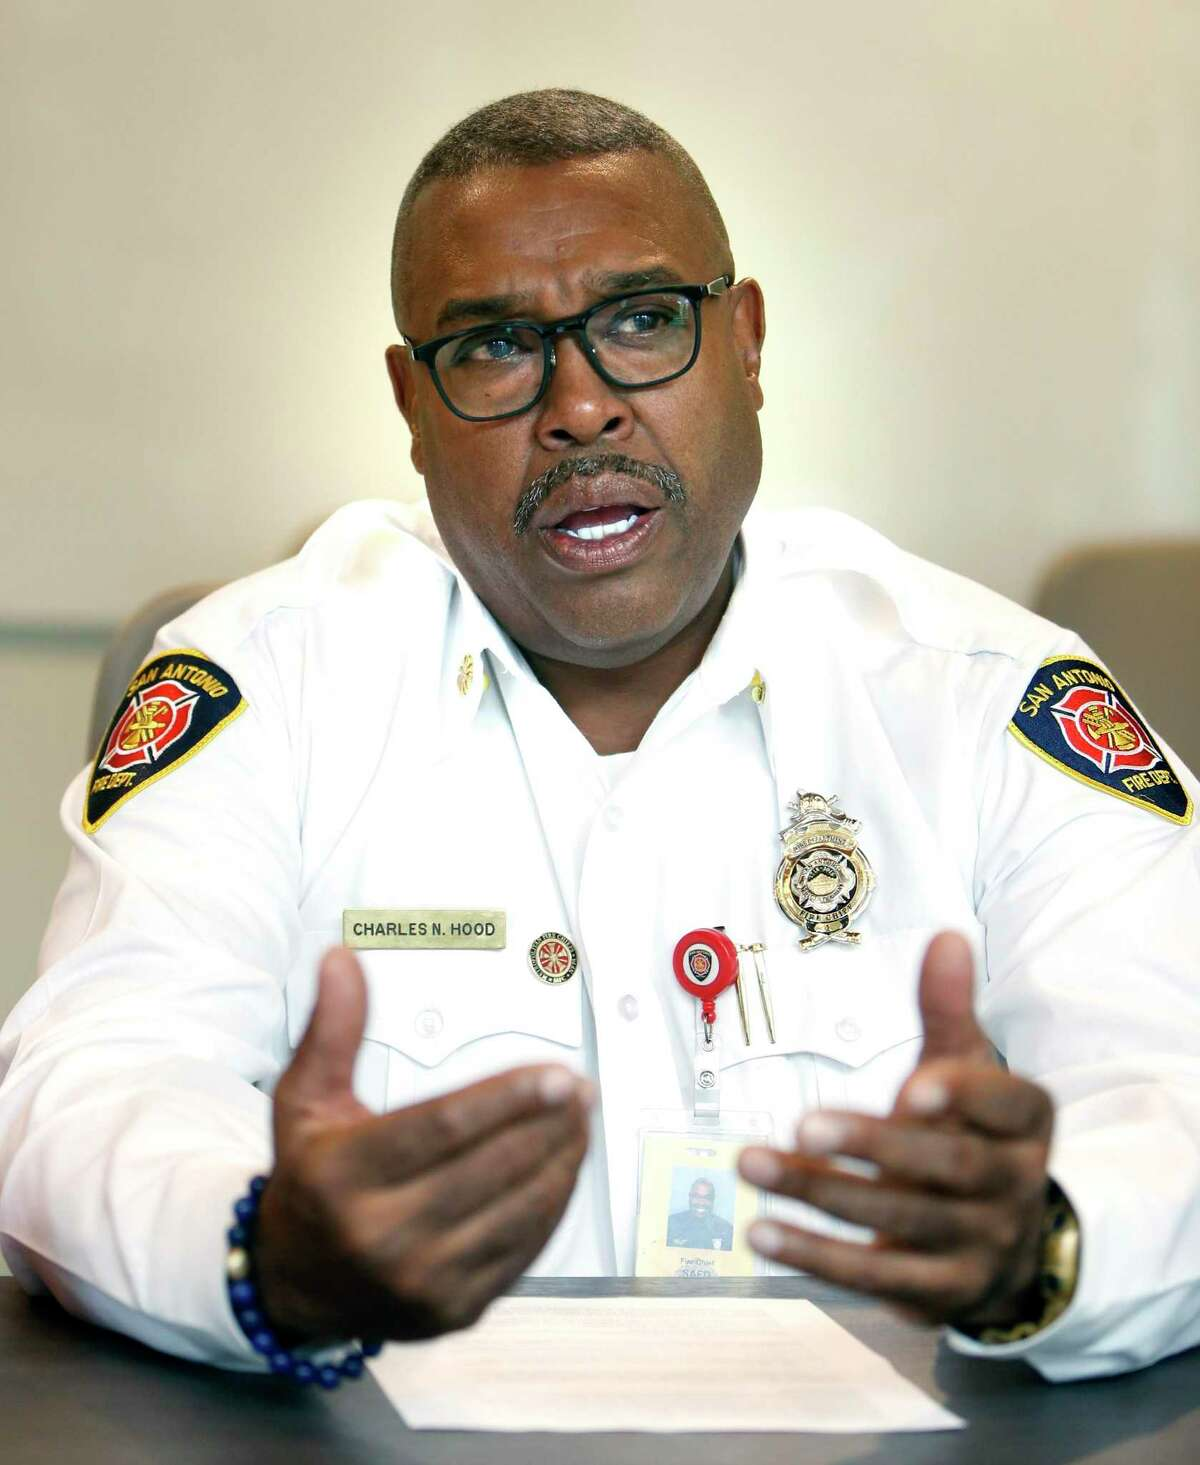 San Antonio Fire Chief Charles Hood could be heard cursing at an attorney Tuesday during a Zoom recording of an arbitration hearing for a fired firefighter.